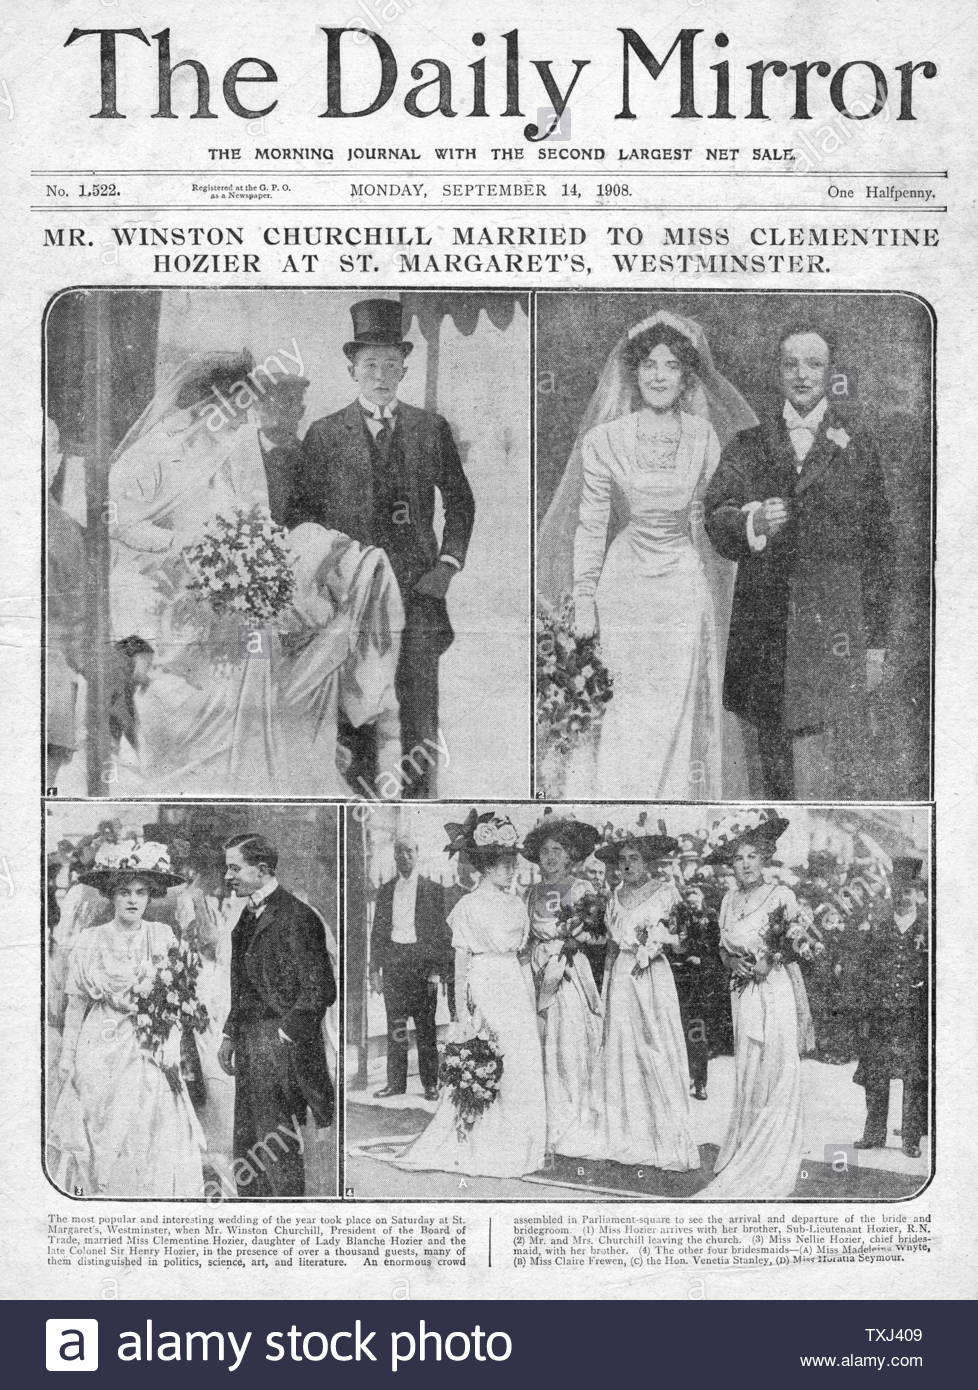 1908 Daily Mirror Front Page Wedding Of Winston Churchill